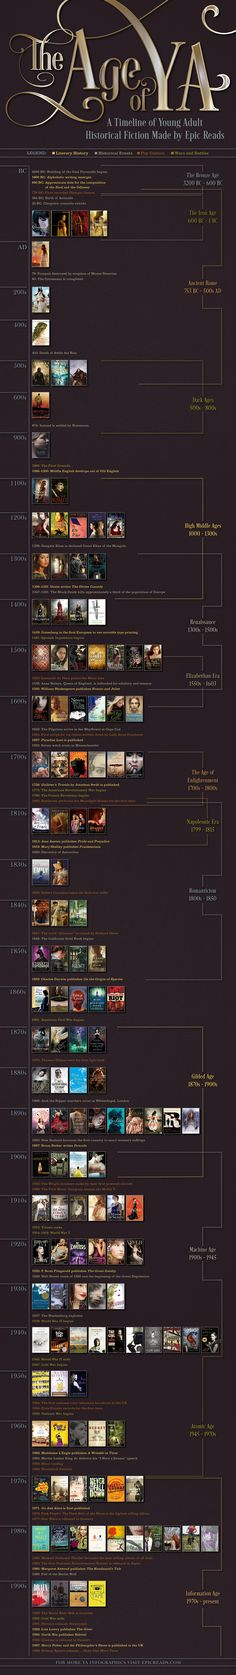 The Age of YA from @epicreads! A timeline of YA historical fiction #ya #yalit #infographic